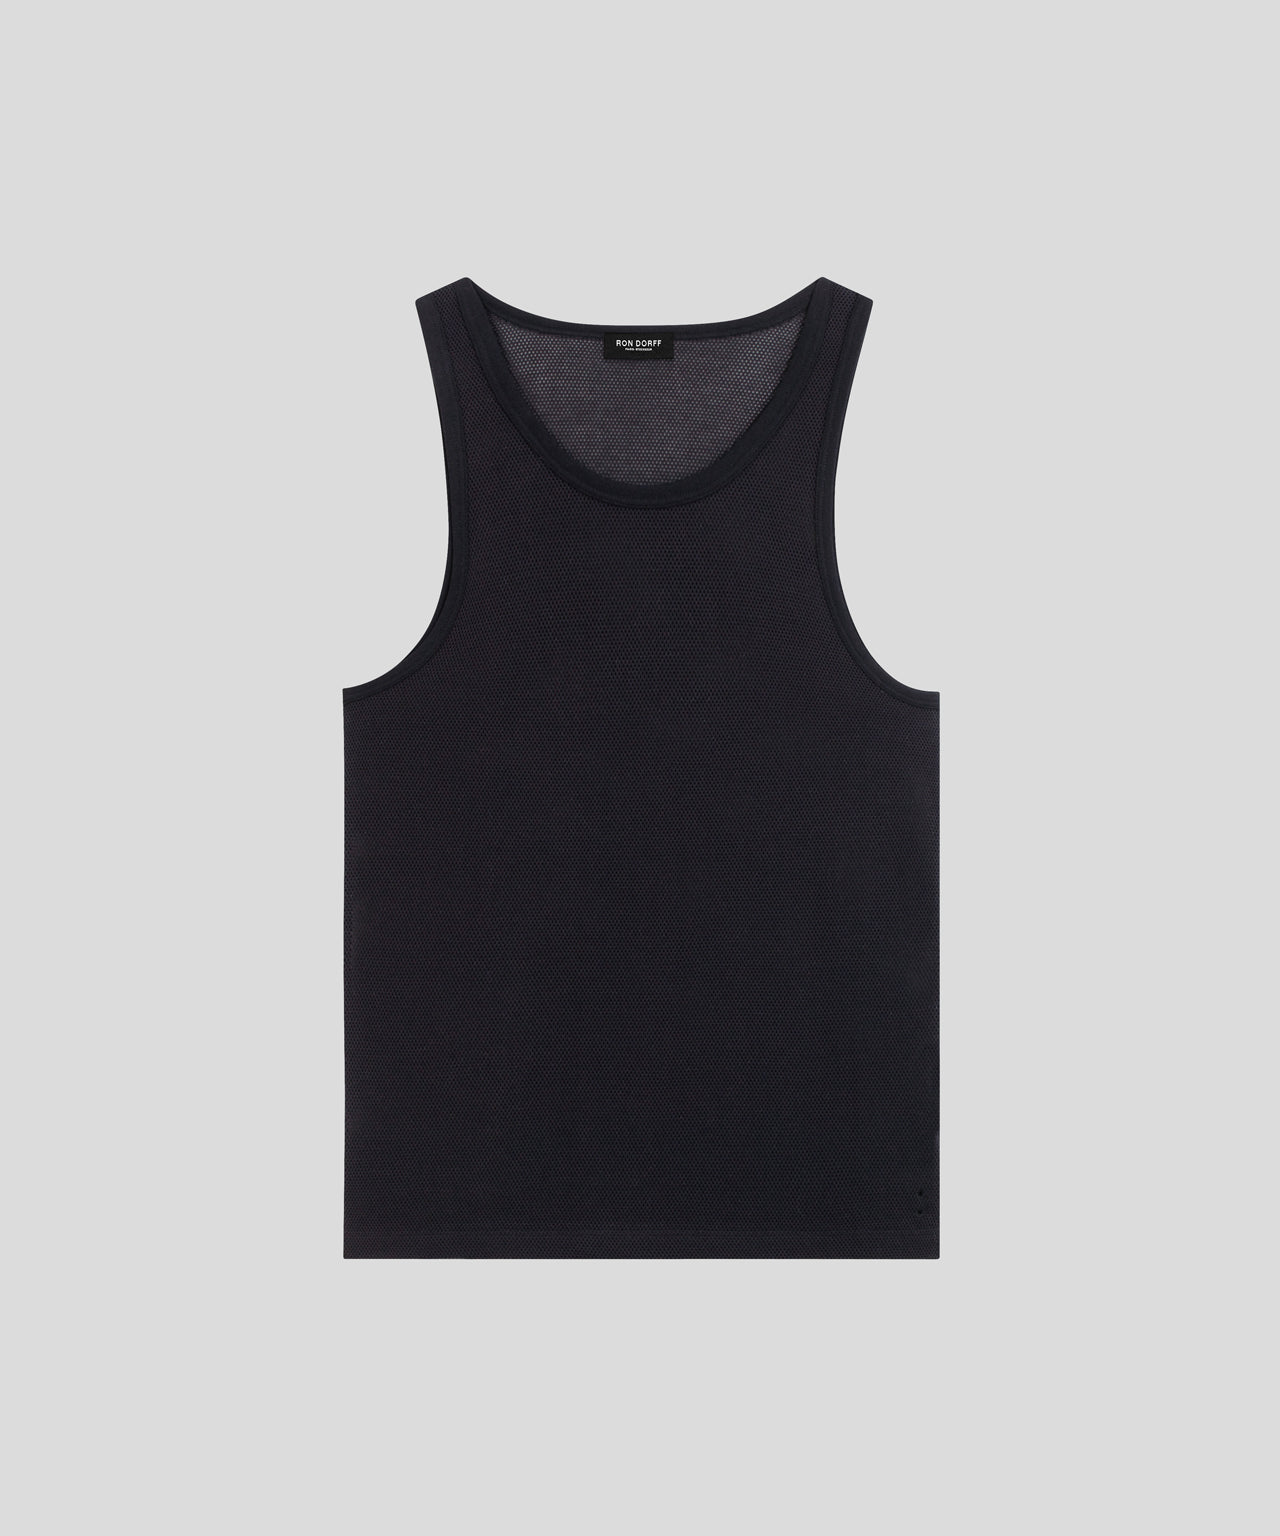 Underwear Tank Top Mesh His for Her - black